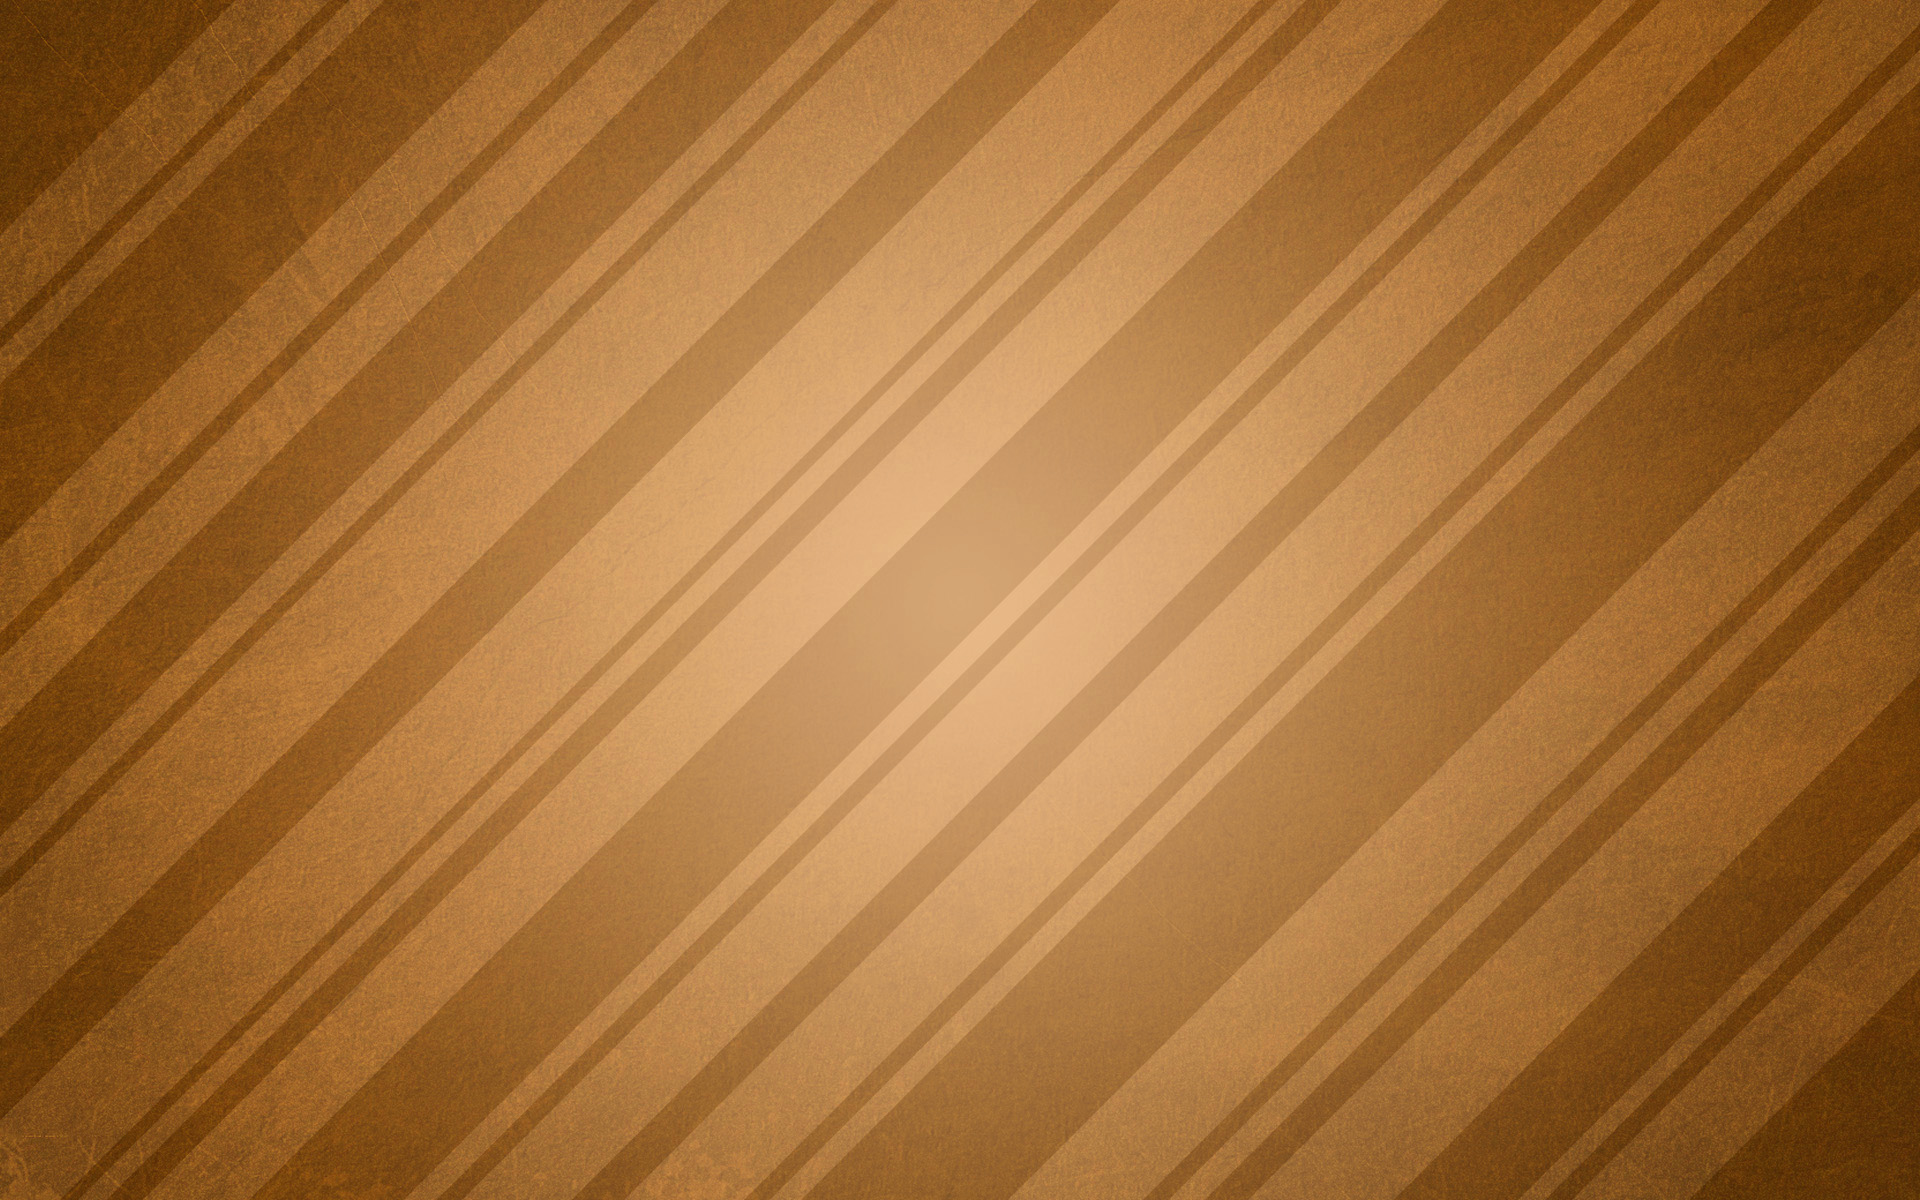 Wrapping Paper Brown